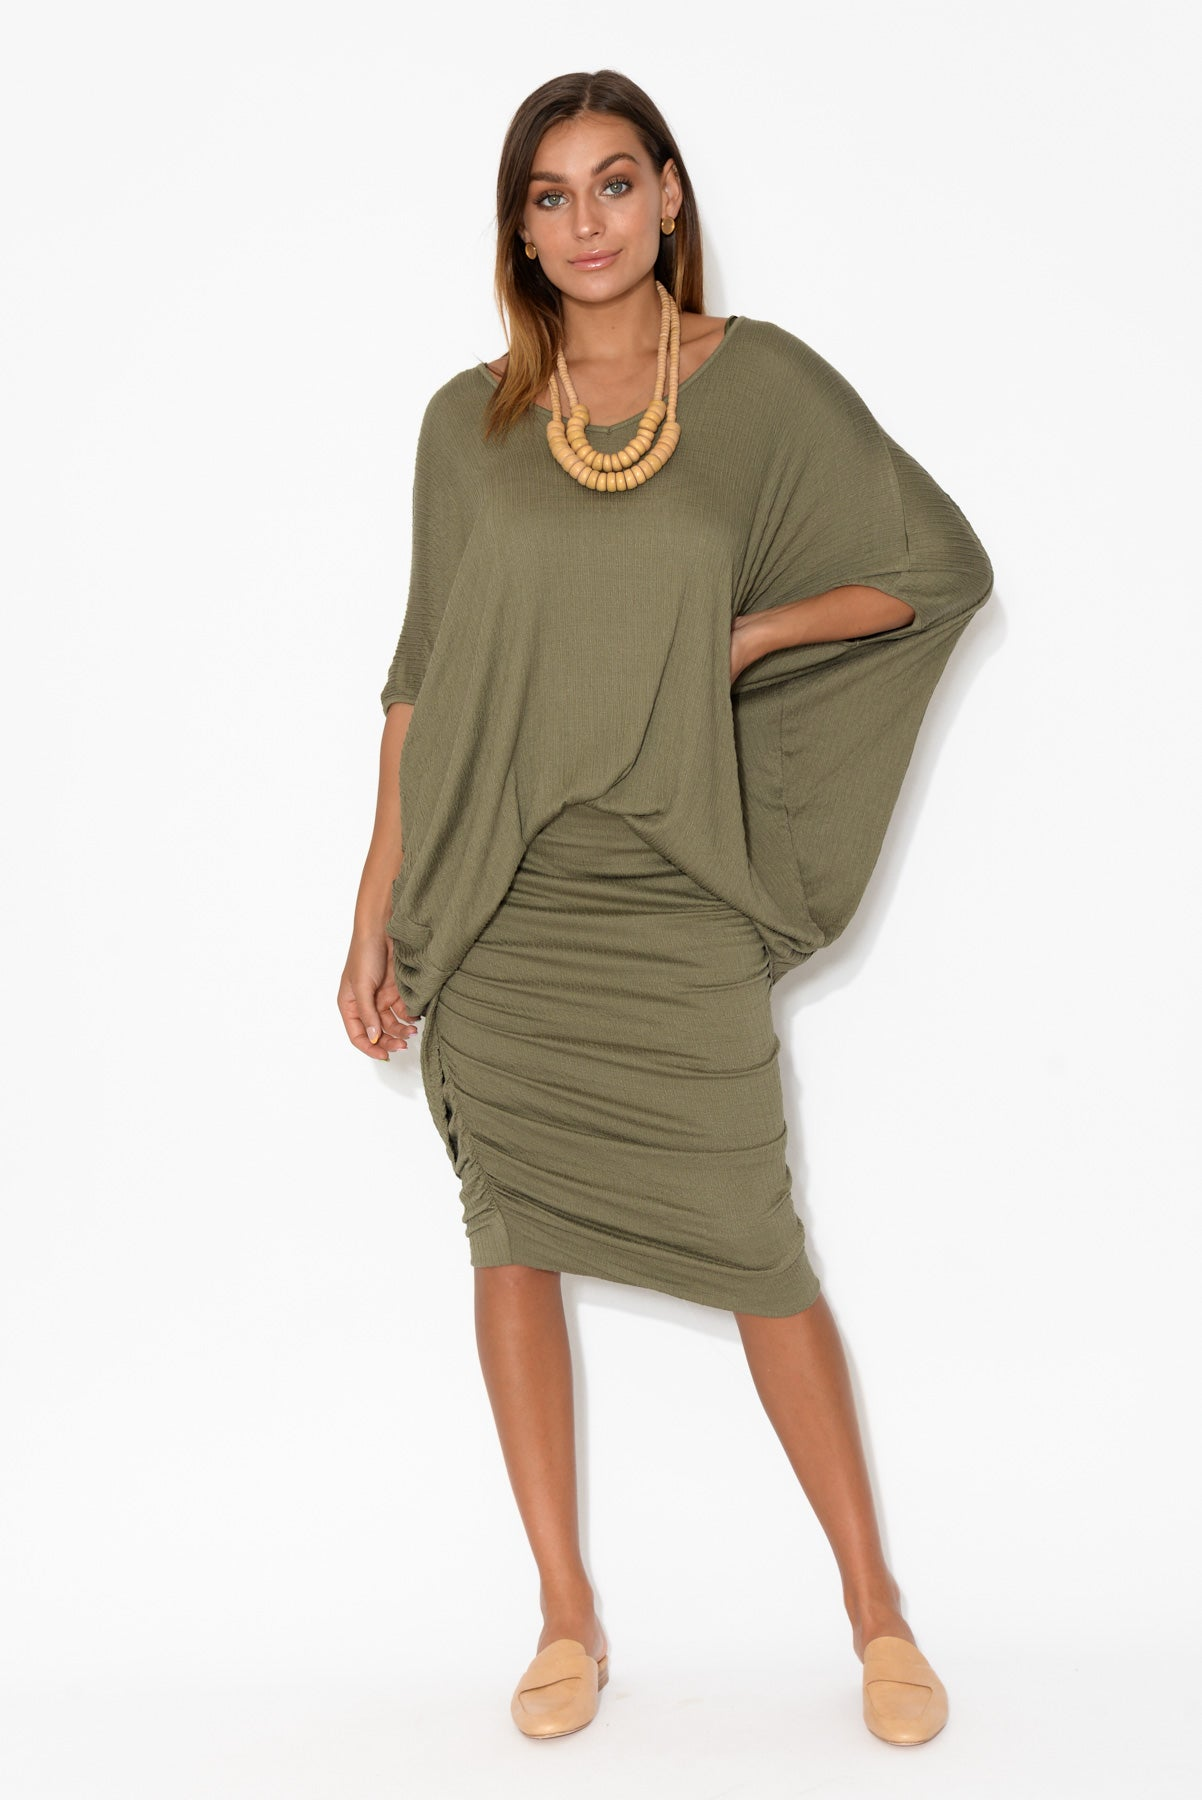 Khaki Textured Ruched Skirt